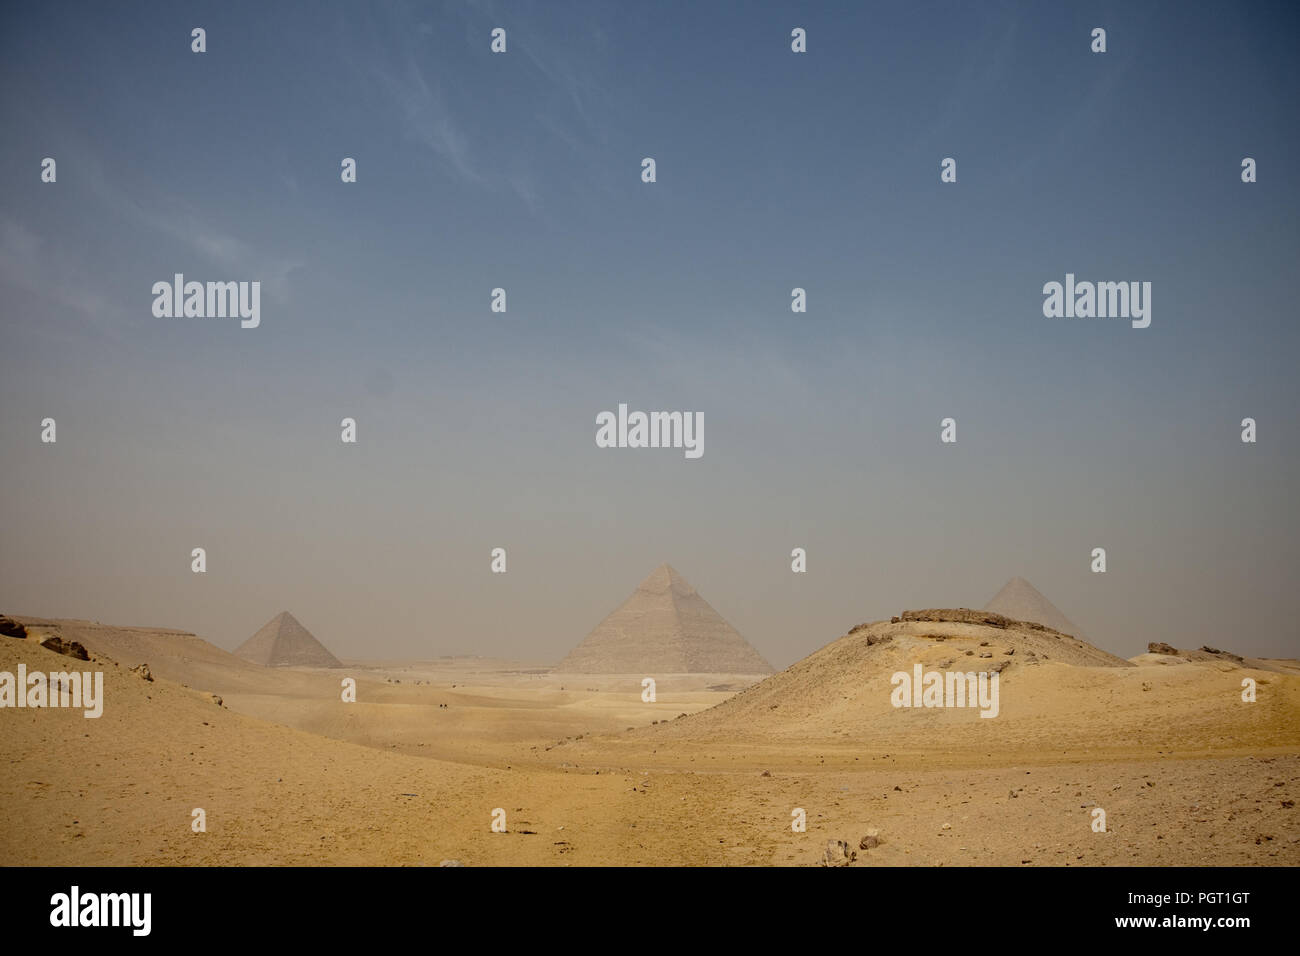 Hazy pyramids from a distant position, Cairo, Egypt - Stock Image